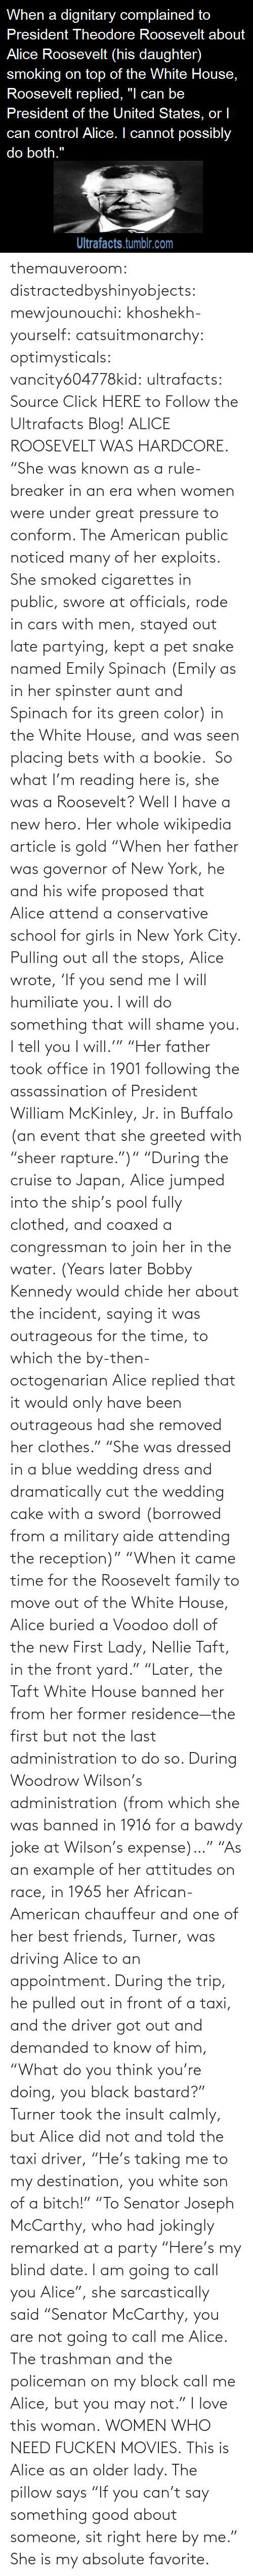 "african: themauveroom: distractedbyshinyobjects:  mewjounouchi:  khoshekh-yourself:  catsuitmonarchy:  optimysticals:  vancity604778kid:  ultrafacts:     Source Click HERE to Follow the Ultrafacts Blog!     ALICE ROOSEVELT WAS HARDCORE. ""She was known as a rule-breaker in an era when women were under great pressure to conform. The American public noticed many of her exploits. She smoked cigarettes in public, swore at officials, rode in cars with men, stayed out late partying, kept a pet snake named Emily Spinach (Emily as in her spinster aunt and Spinach for its green color) in the White House, and was seen placing bets with a bookie.    So what I'm reading here is, she was a Roosevelt?  Well I have a new hero.  Her whole wikipedia article is gold ""When her father was governor of New York, he and his wife proposed that Alice attend a conservative school for girls in New York City. Pulling out all the stops, Alice wrote, 'If you send me I will humiliate you. I will do something that will shame you. I tell you I will.'"" ""Her father took office in 1901 following the assassination of President William McKinley, Jr. in Buffalo (an event that she greeted with ""sheer rapture."")"" ""During the cruise to Japan, Alice jumped into the ship's pool fully clothed, and coaxed a congressman to join her in the water. (Years later Bobby Kennedy would chide her about the incident, saying it was outrageous for the time, to which the by-then-octogenarian Alice replied that it would only have been outrageous had she removed her clothes."" ""She was dressed in a blue wedding dress and dramatically cut the wedding cake with a sword (borrowed from a military aide attending the reception)"" ""When it came time for the Roosevelt family to move out of the White House, Alice buried a Voodoo doll of the new First Lady, Nellie Taft, in the front yard."" ""Later, the Taft White House banned her from her former residence—the first but not the last administration to do so. During Woodrow Wilson's administration (from which she was banned in 1916 for a bawdy joke at Wilson's expense)…"" ""As an example of her attitudes on race, in 1965 her African-American chauffeur and one of her best friends, Turner, was driving Alice to an appointment. During the trip, he pulled out in front of a taxi, and the driver got out and demanded to know of him, ""What do you think you're doing, you black bastard?"" Turner took the insult calmly, but Alice did not and told the taxi driver, ""He's taking me to my destination, you white son of a bitch!"" ""To Senator Joseph McCarthy, who had jokingly remarked at a party ""Here's my blind date. I am going to call you Alice"", she sarcastically said ""Senator McCarthy, you are not going to call me Alice. The trashman and the policeman on my block call me Alice, but you may not.""  I love this woman.  WOMEN WHO NEED FUCKEN MOVIES.   This is Alice as an older lady. The pillow says ""If you can't say something good about someone, sit right here by me.""  She is my absolute favorite."